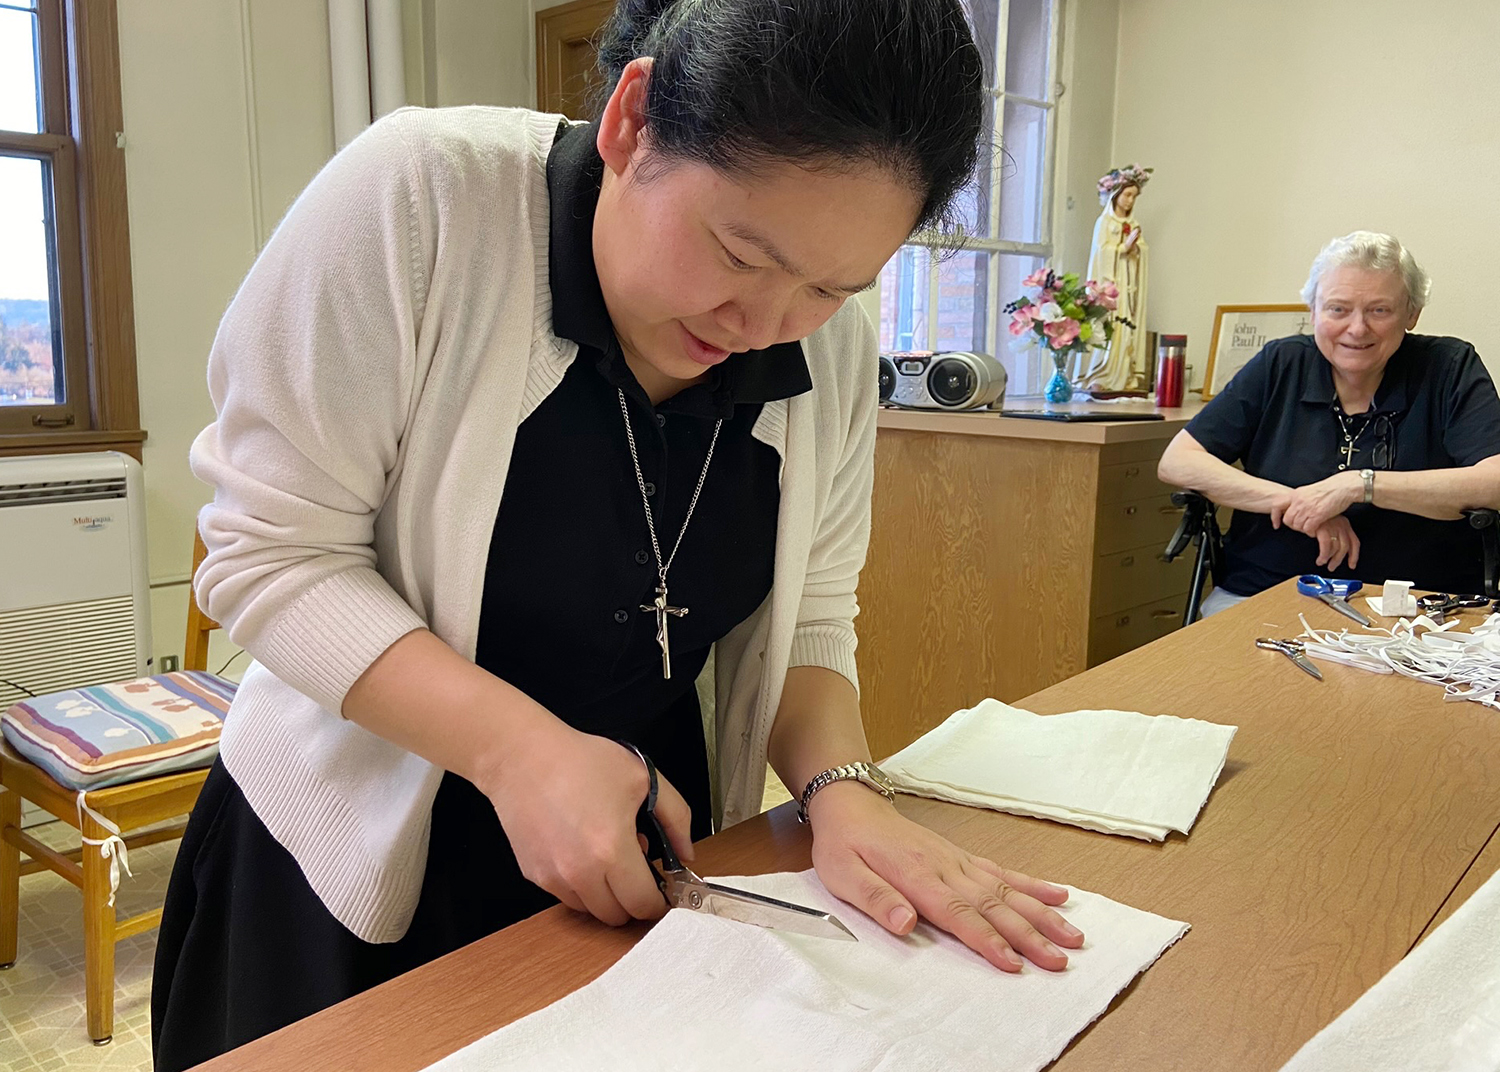 Oregon's 'sewing' sisters, local Catholic community make face masks, gowns